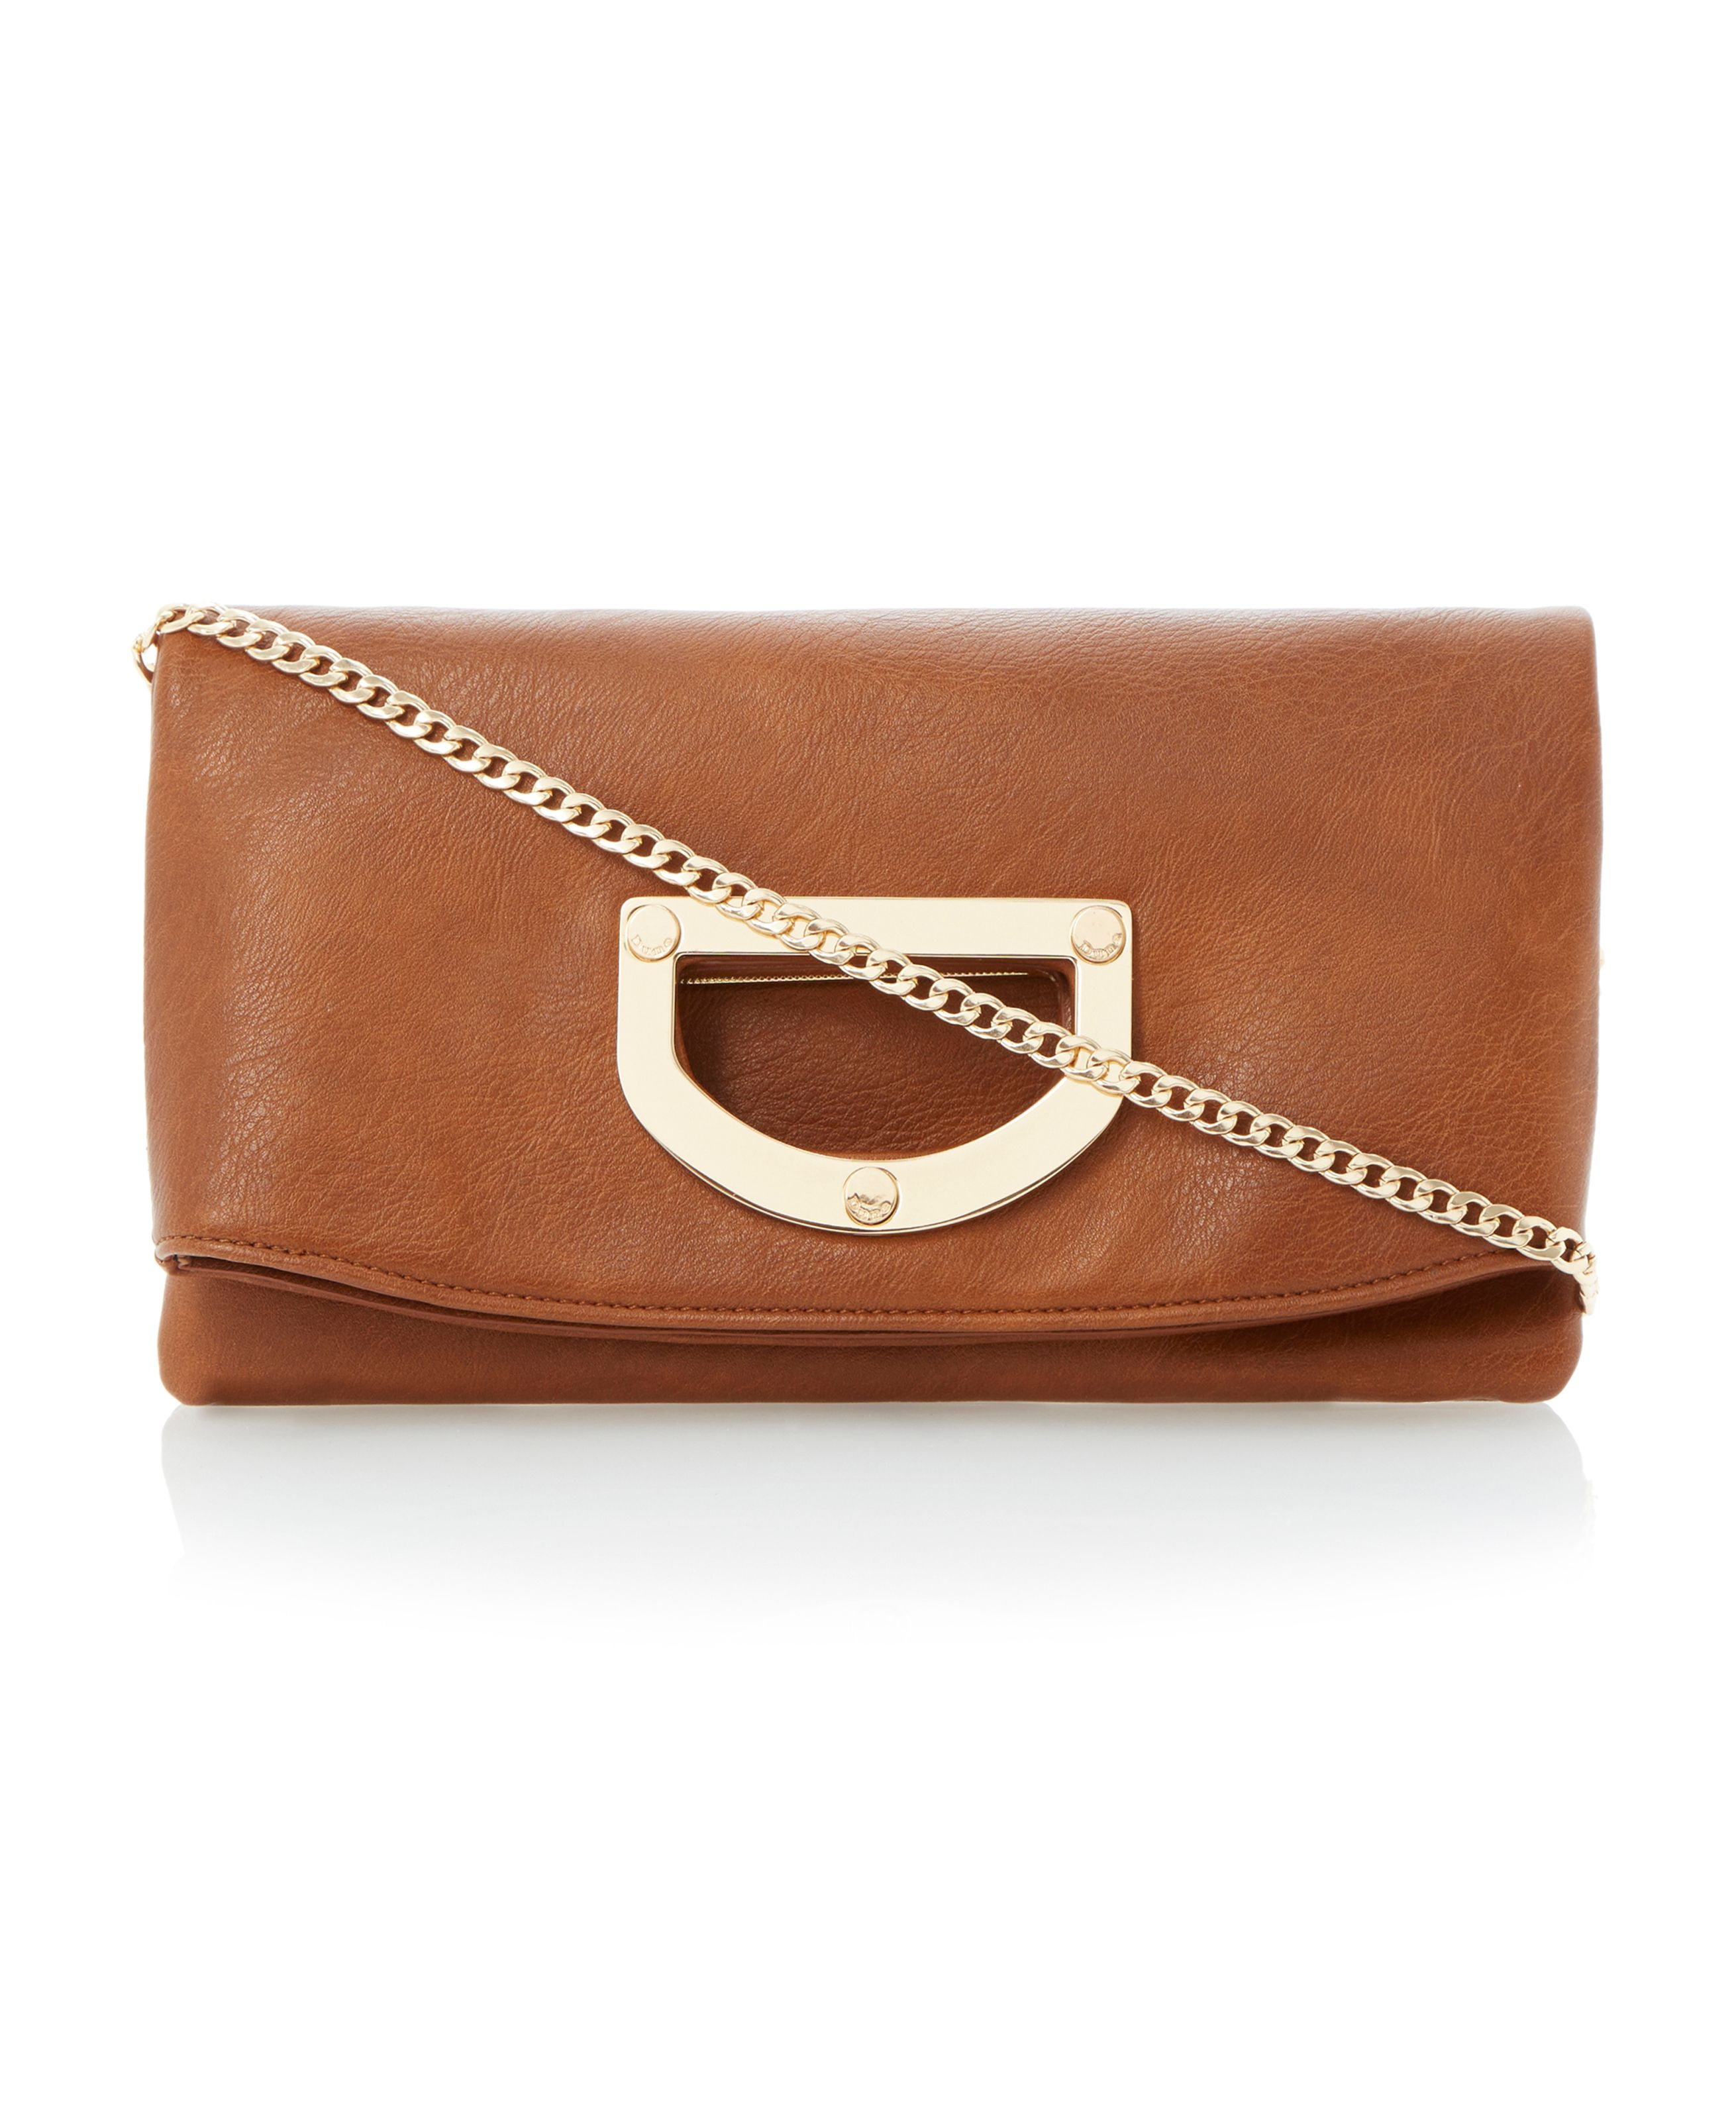 Elite frame handle foldover clutch bag